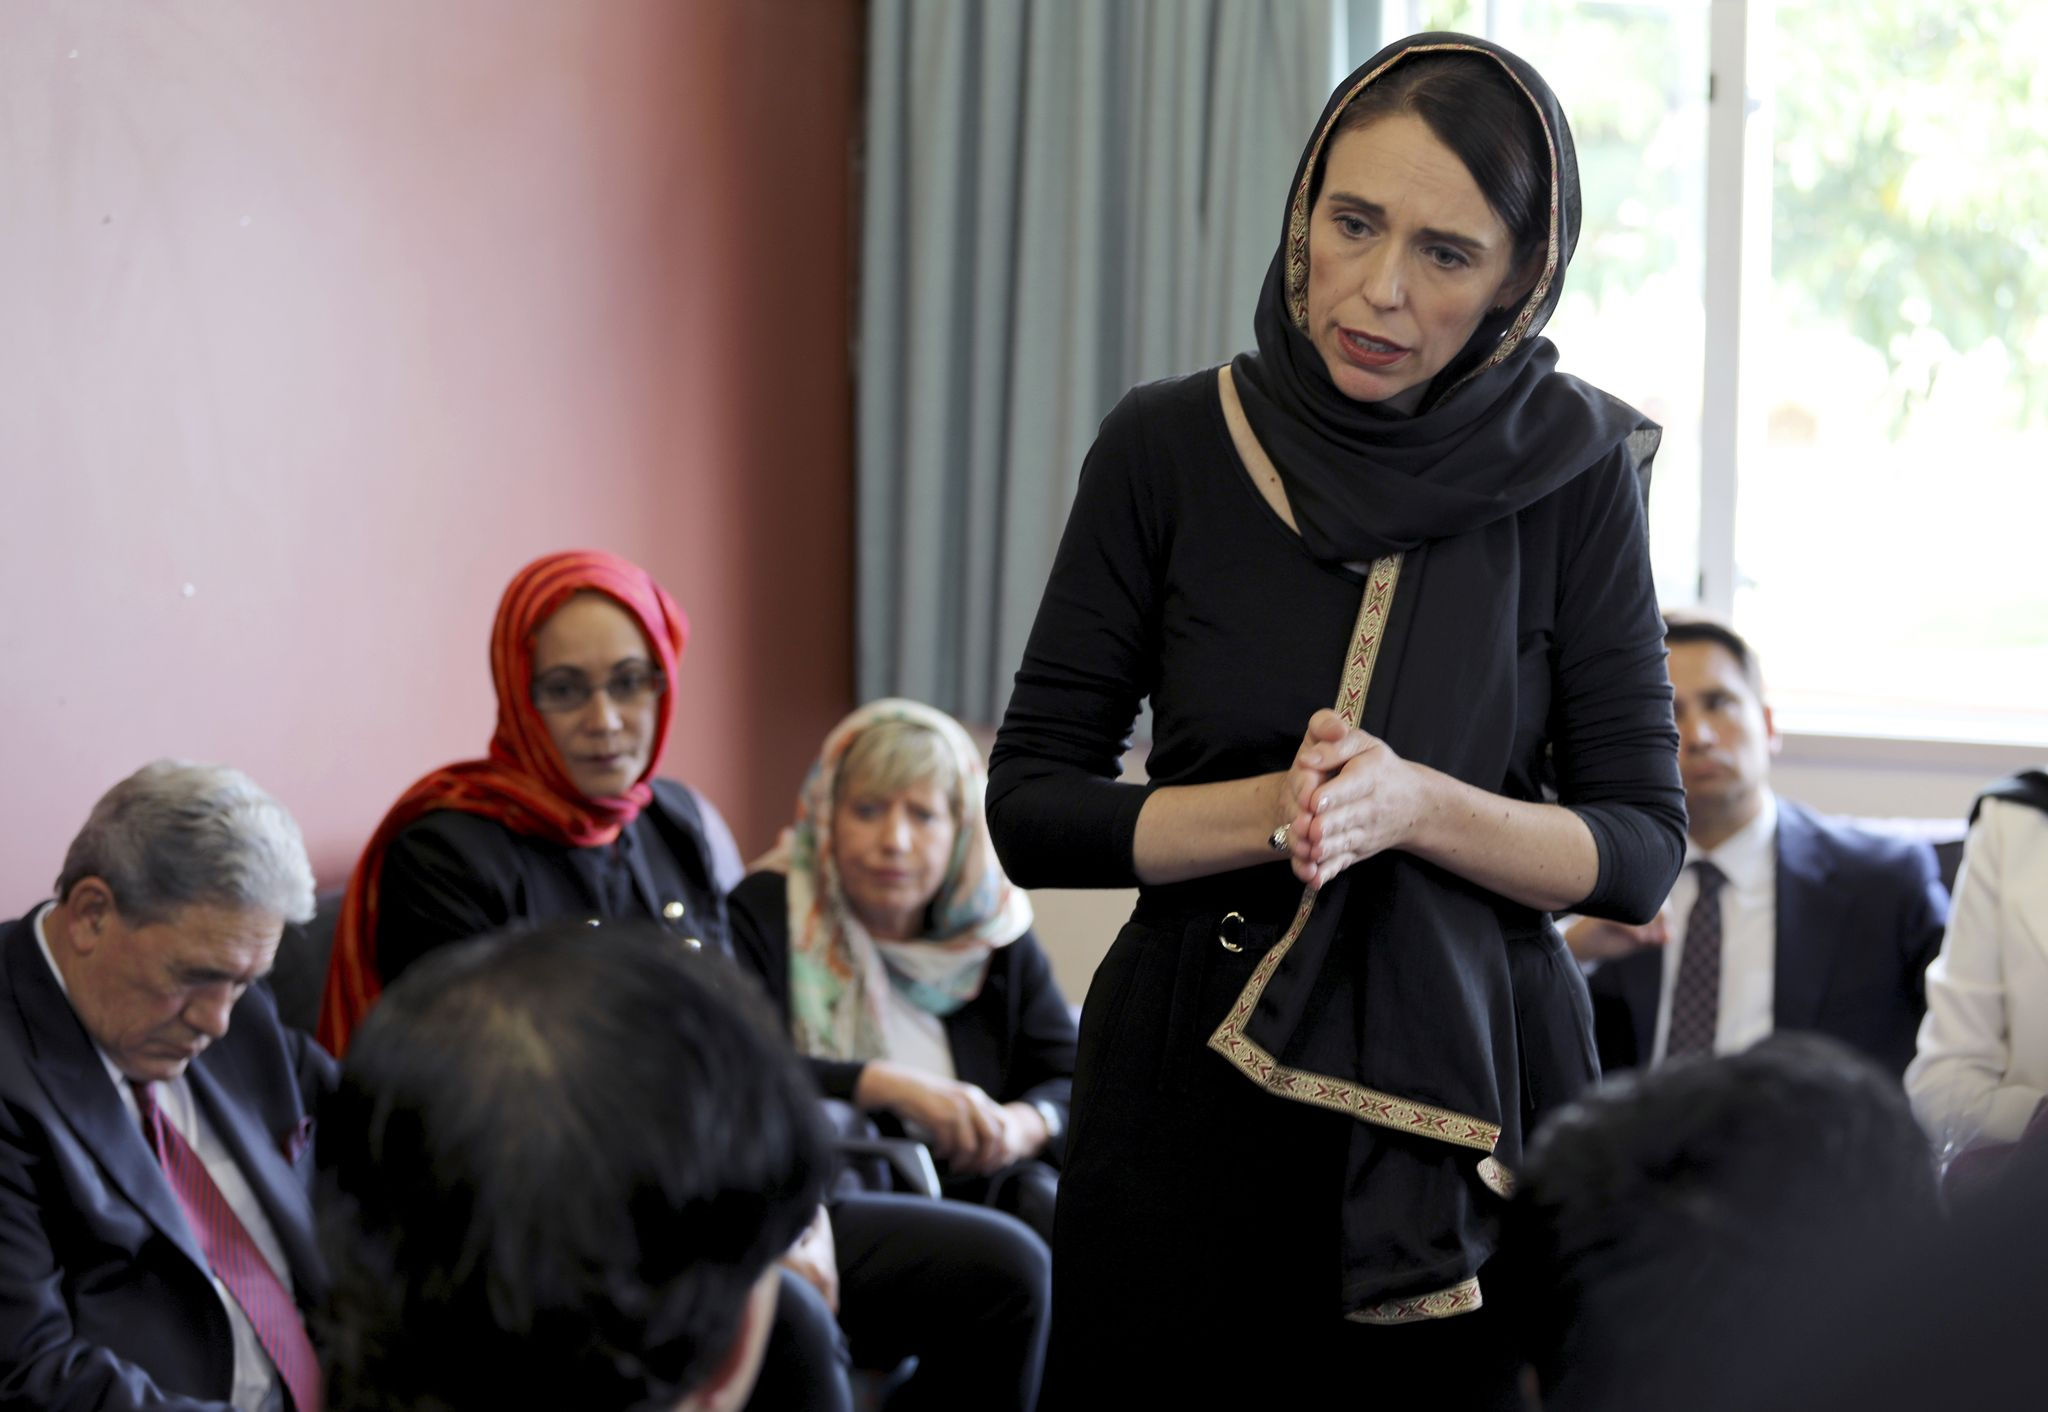 New Zealand welcomes gun control after mosque massacre: 'There will be no opposition'